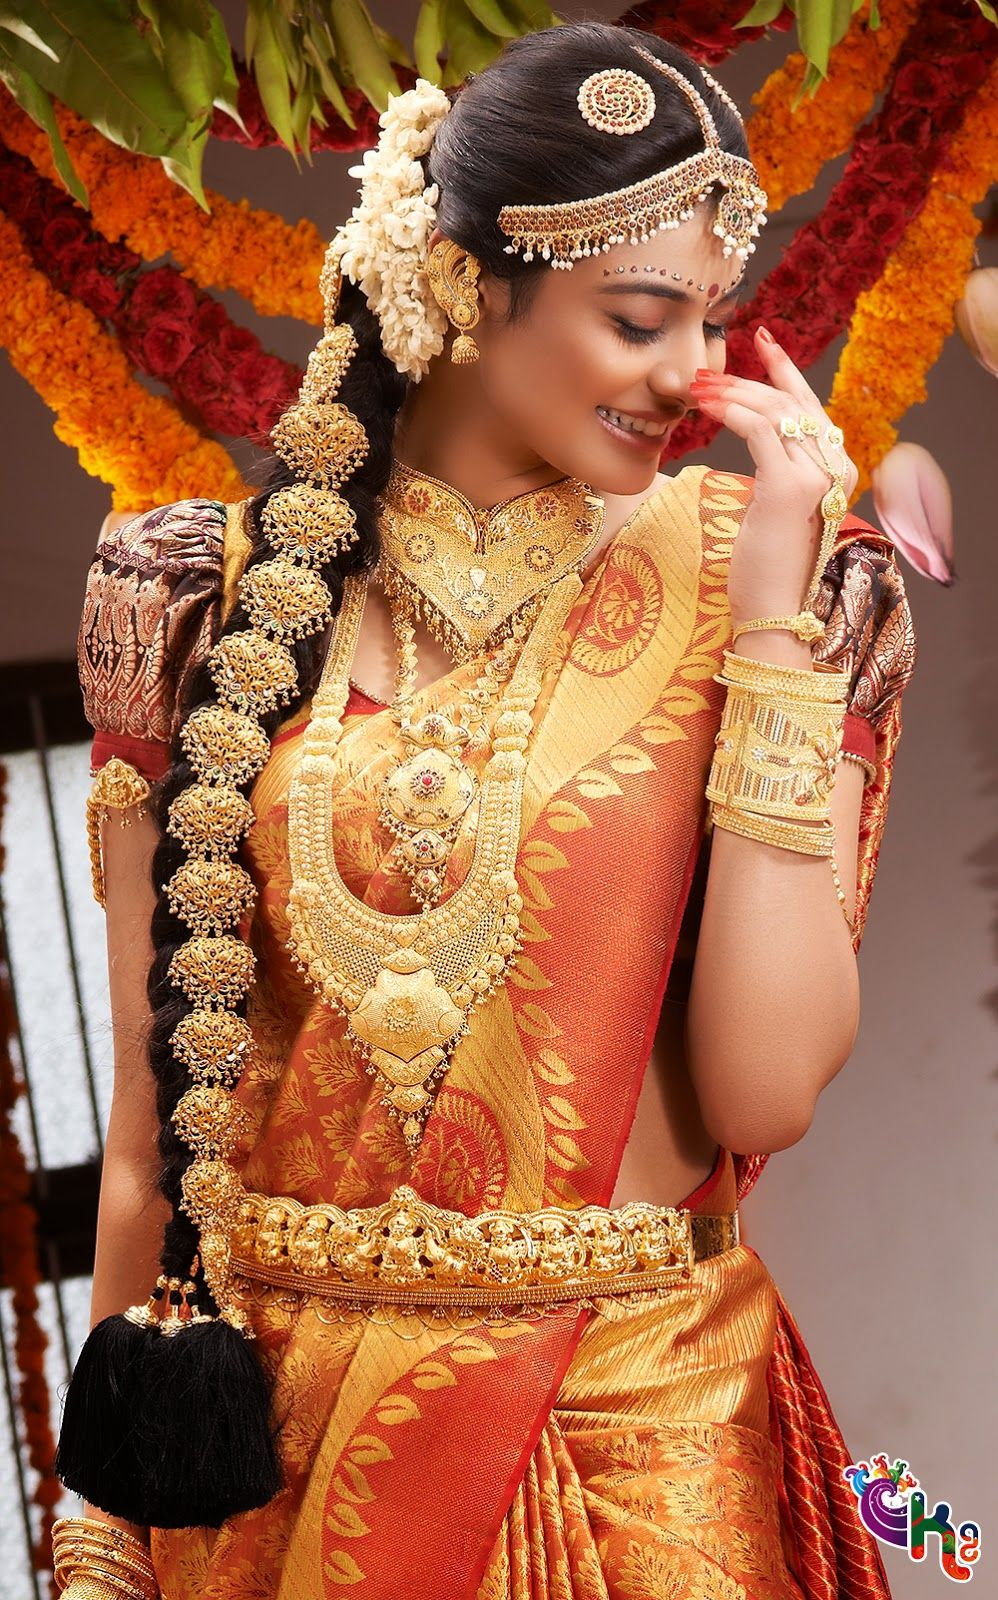 20 best south indian brides images on pinterest | south indian